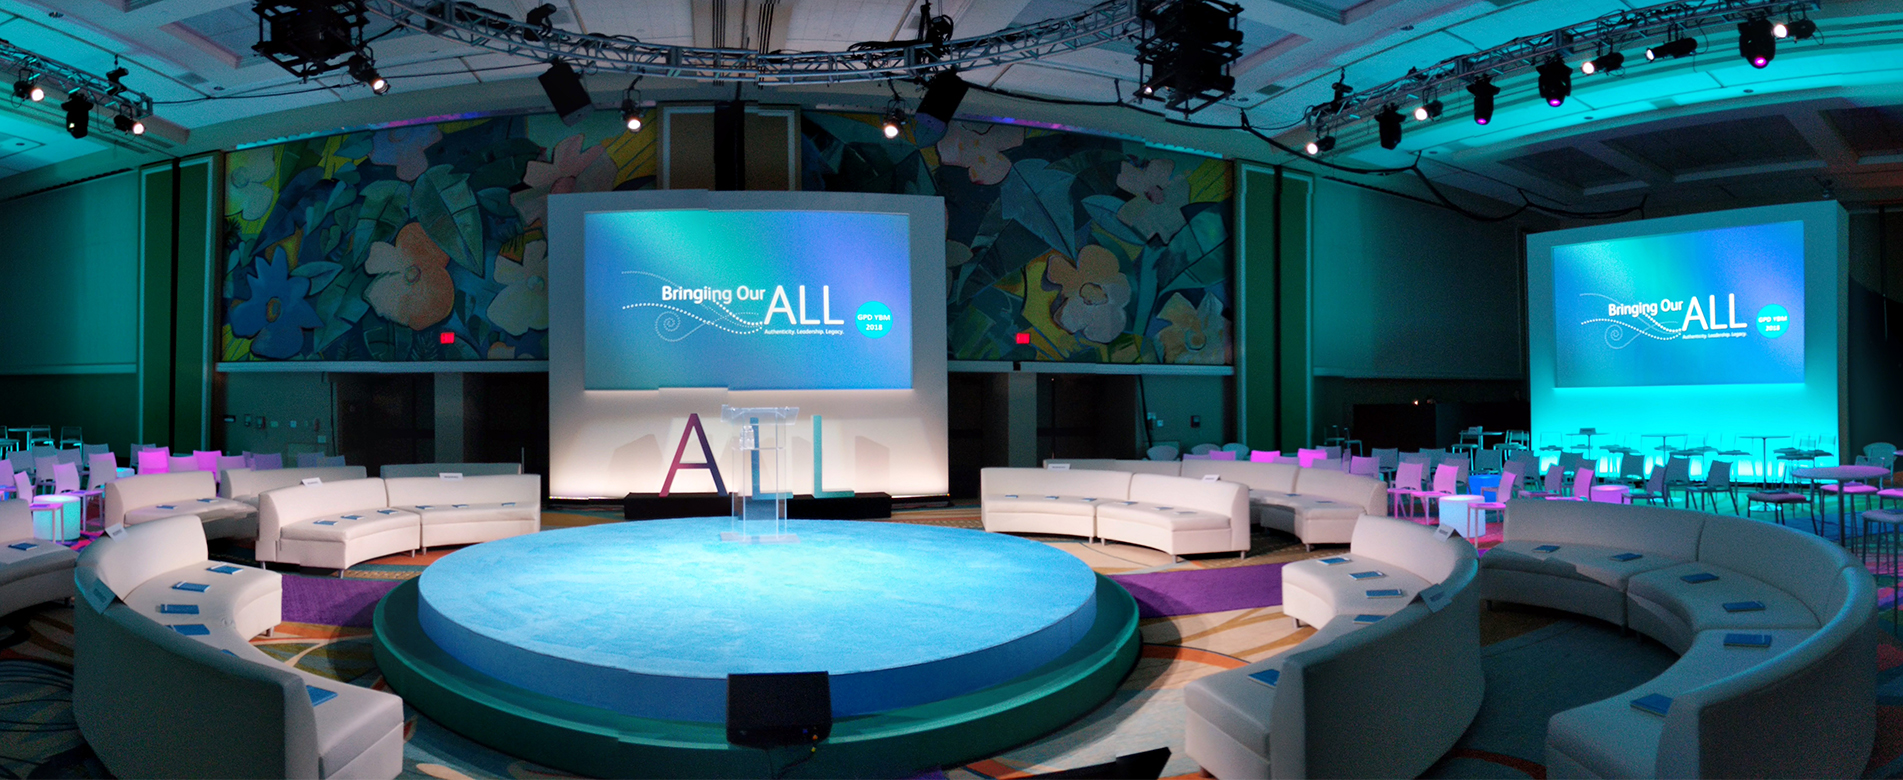 event staging and production